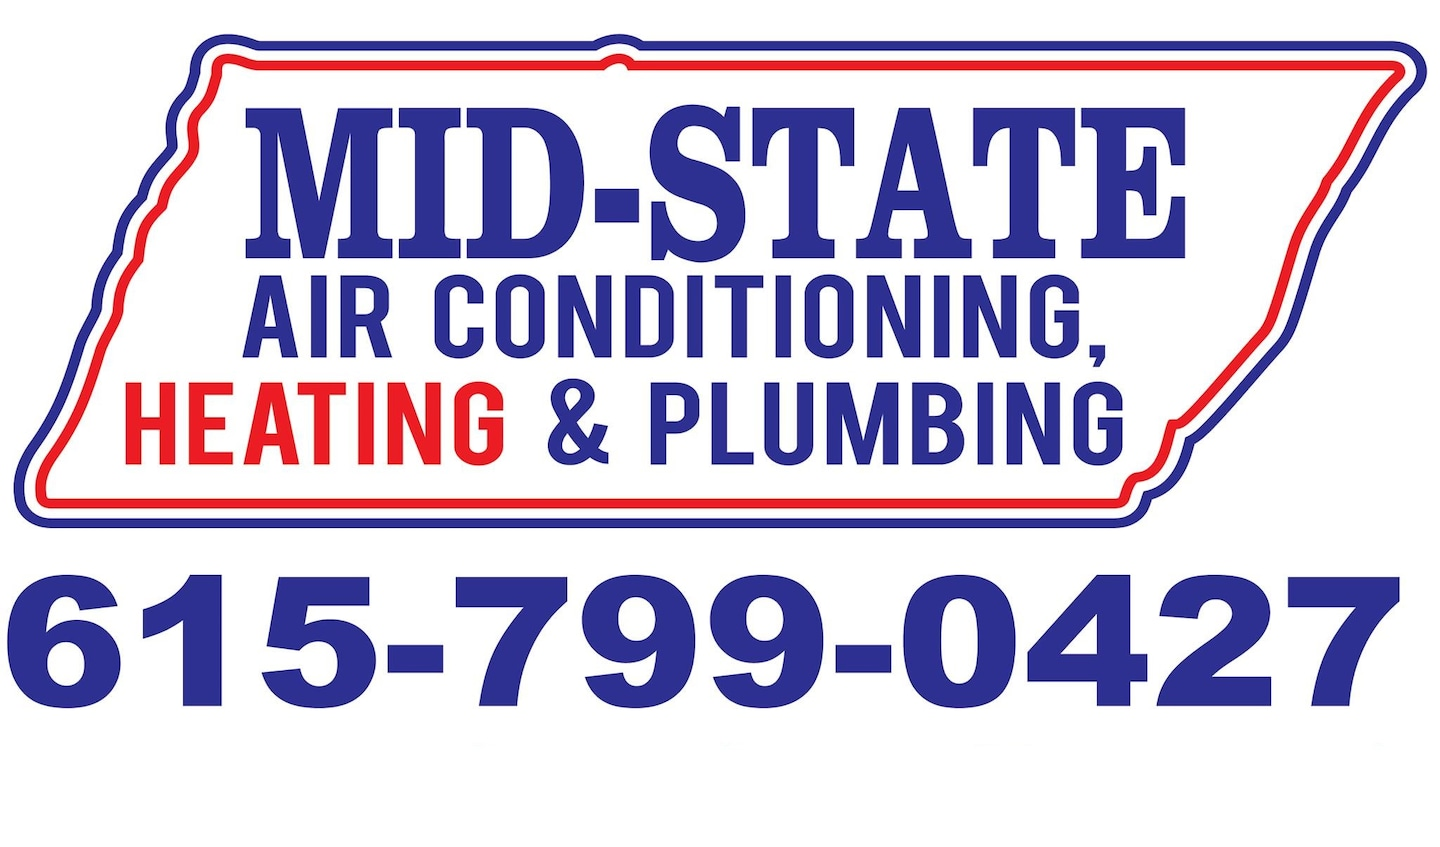 Mid-State Air Conditioning, Heating & Plumbing LLC